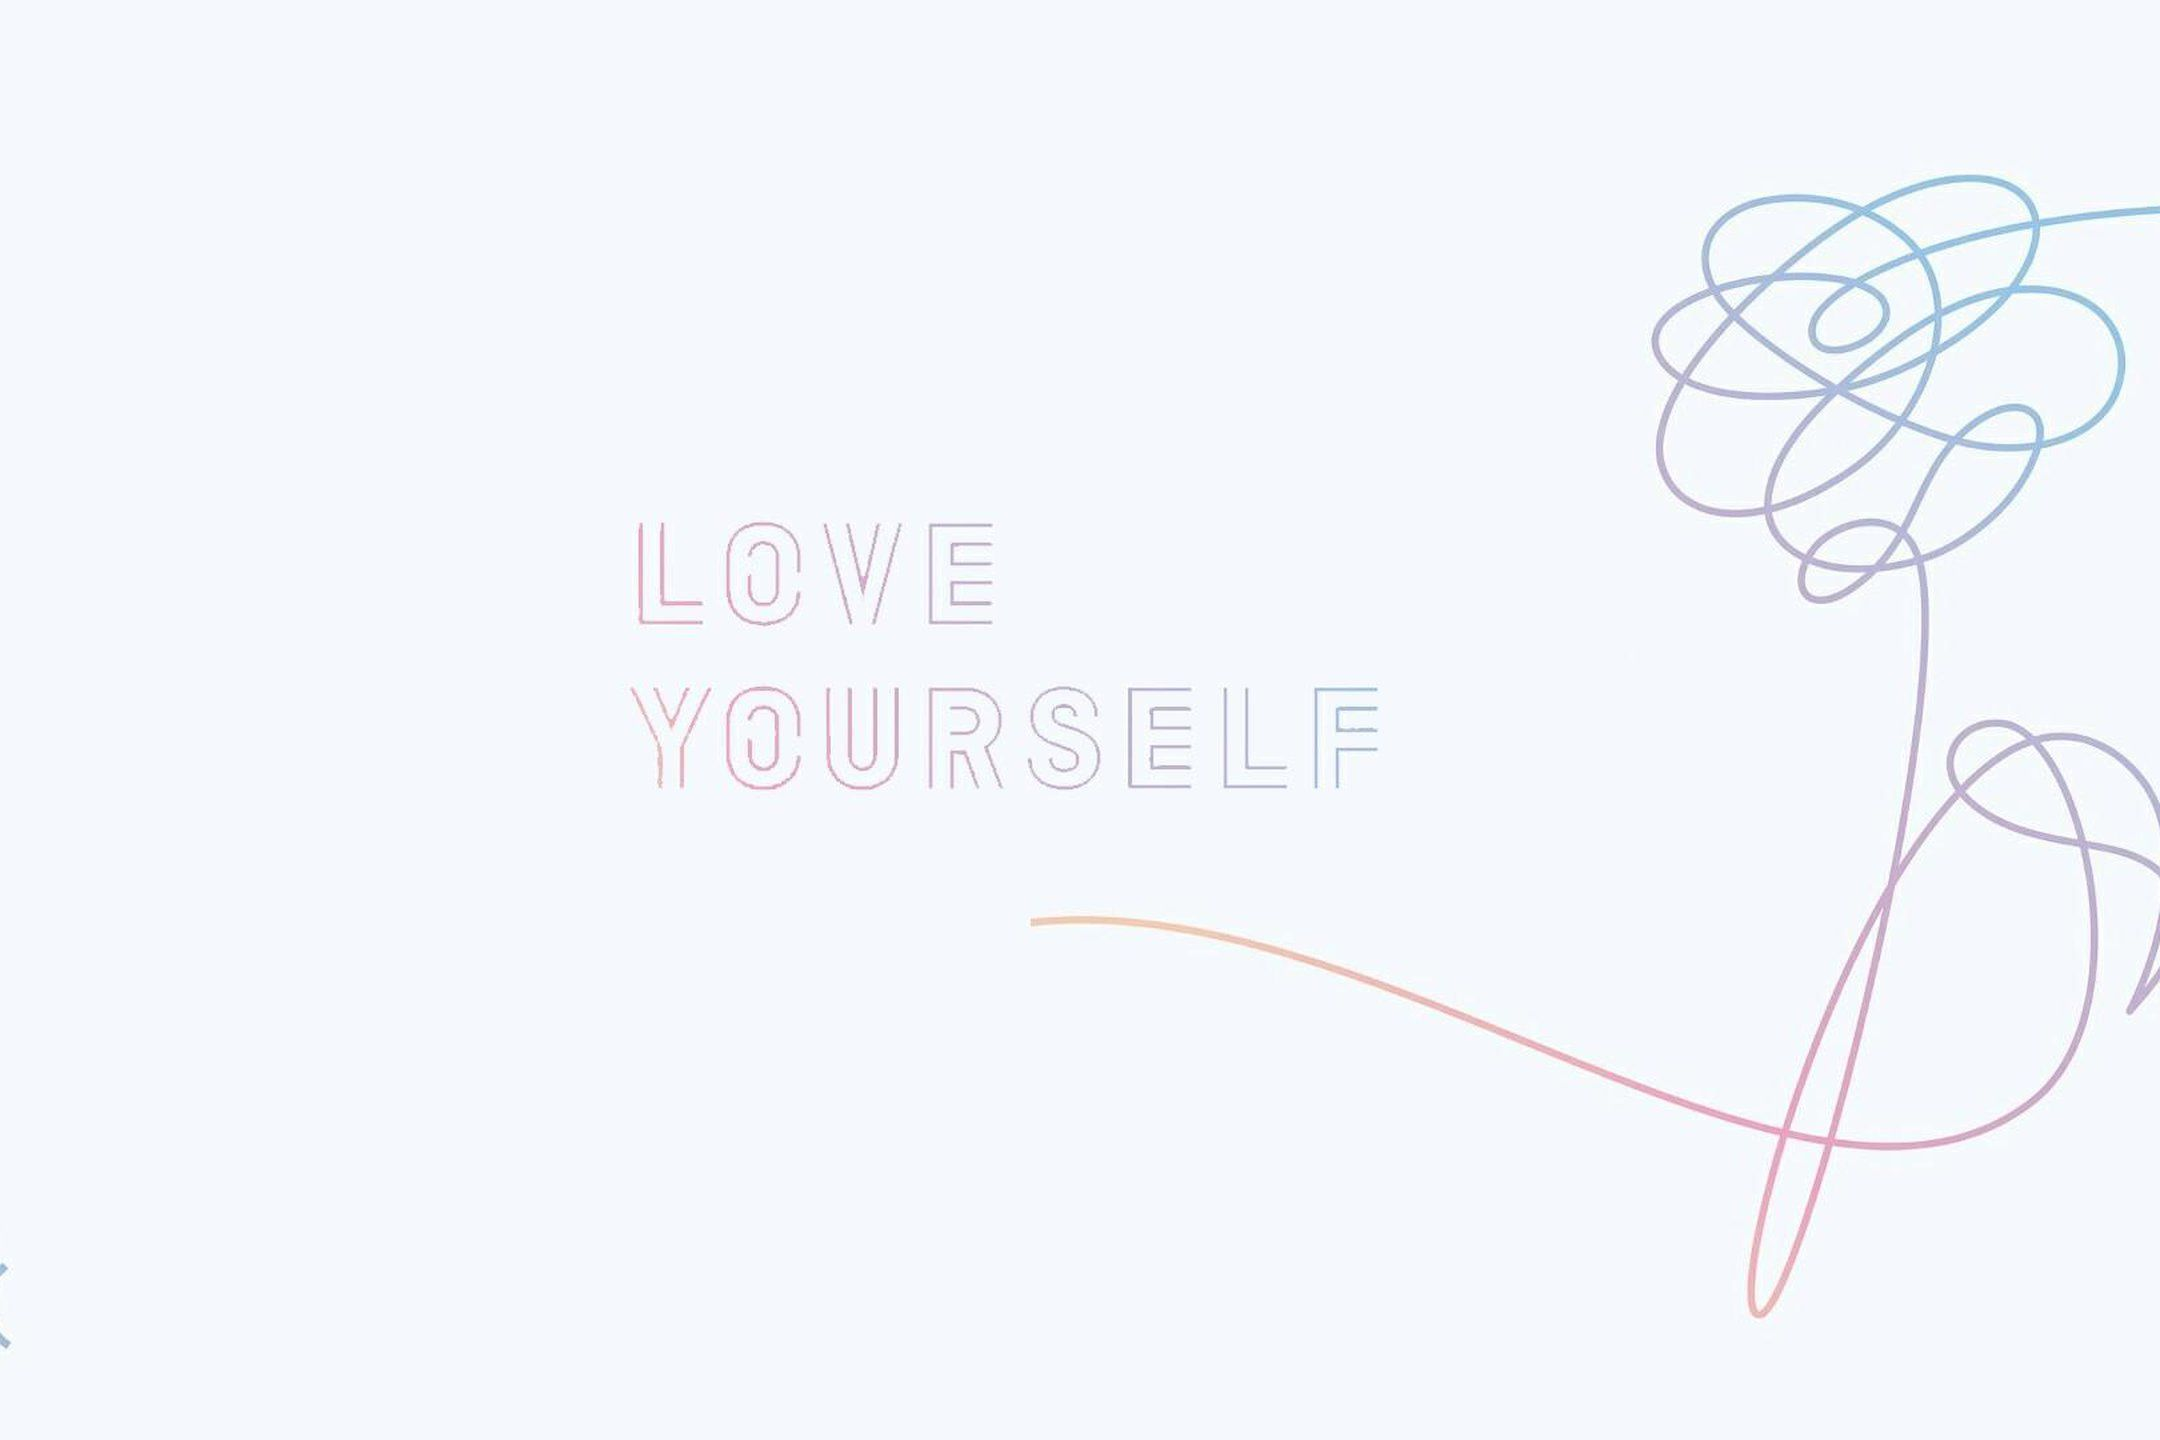 Download Love Yourself Her Bts Love Yourself Answer K Pop Qrxnu ...